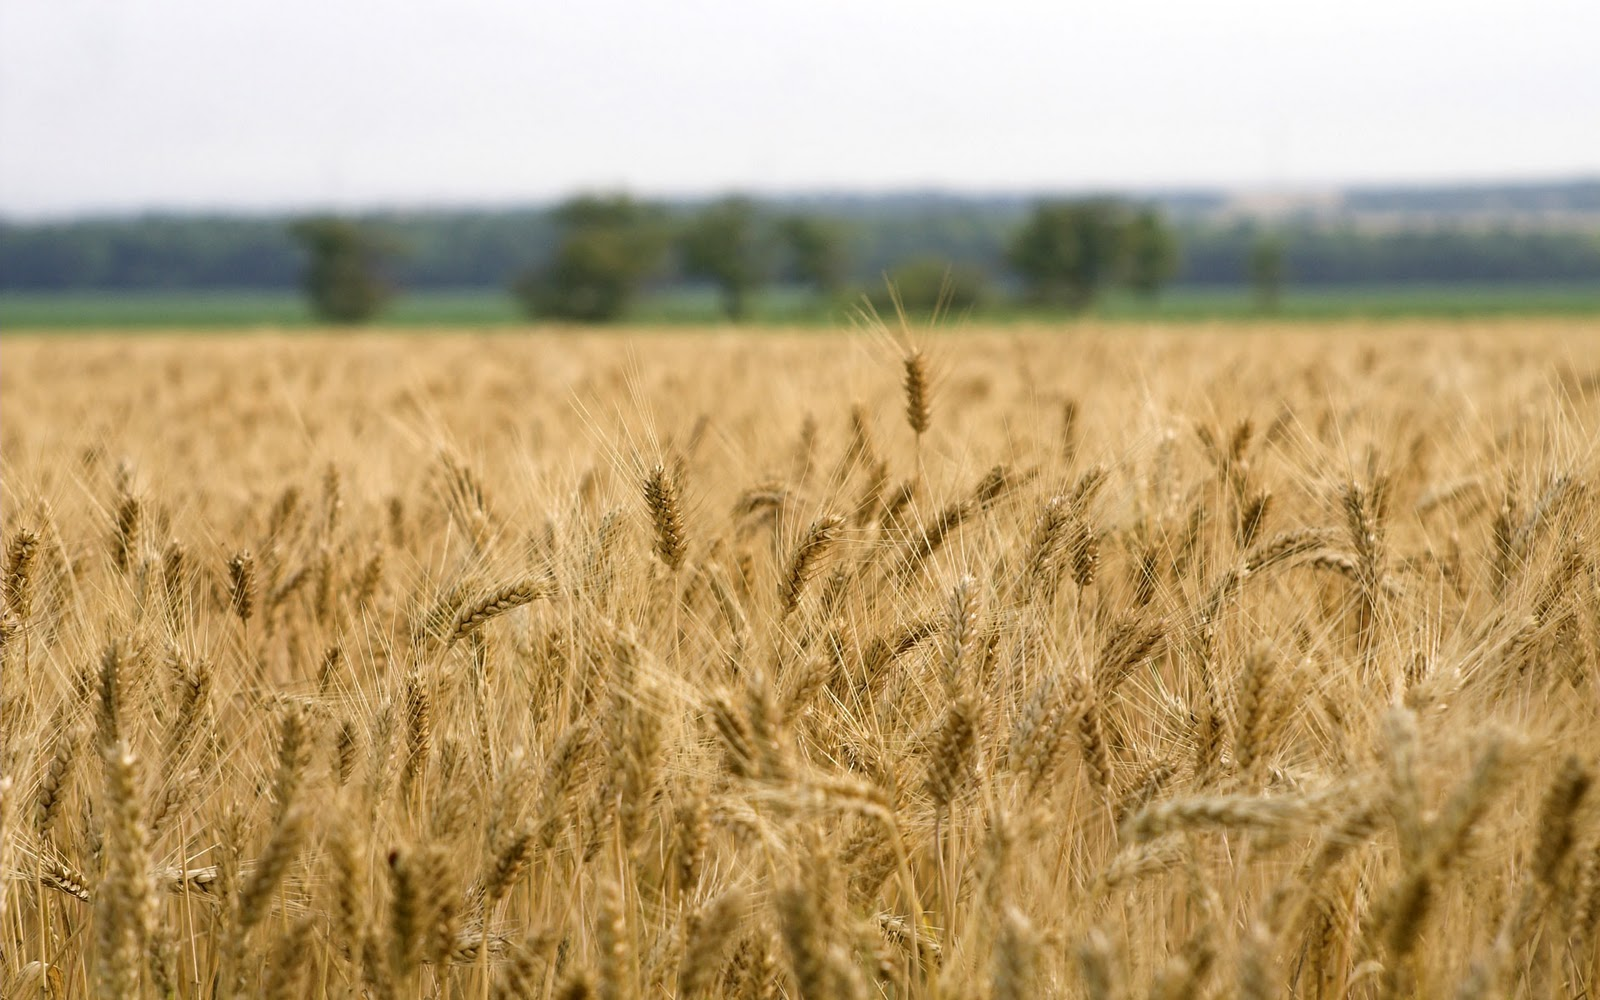 http://4.bp.blogspot.com/-SVrGLD7Uwgk/TvlVM9pF8fI/AAAAAAAAAls/I3Fvf6HJJVo/s1600/Wheat-Fields-Wallpapers-49.jpg